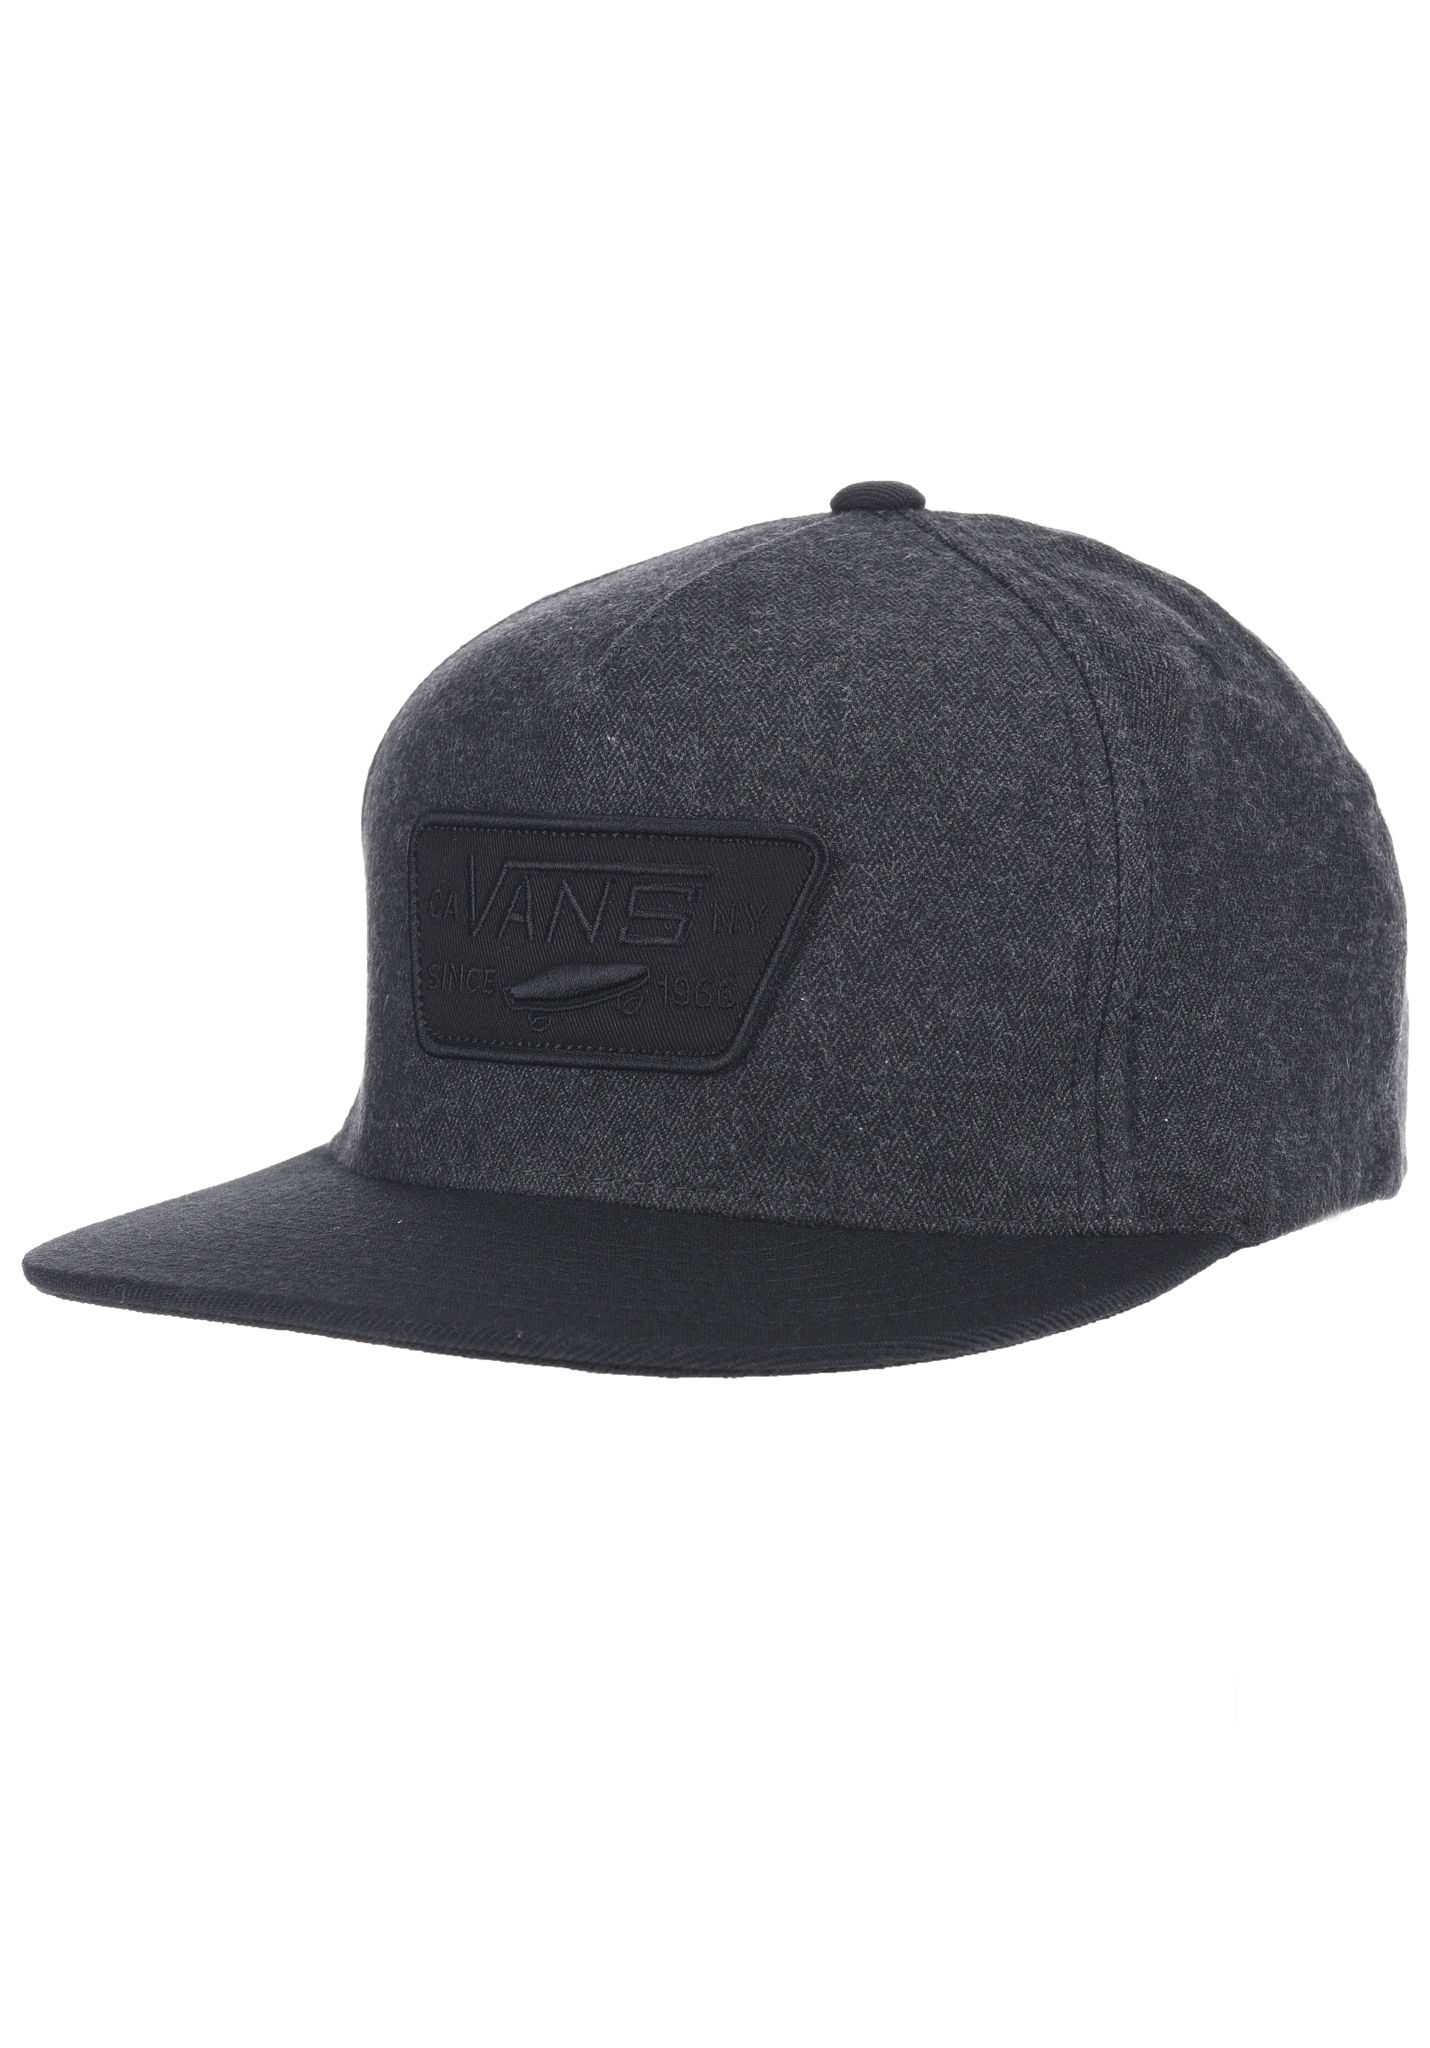 Vans Full Patch - Cappello per Uomo - Nero - Planet Sports 38abf9087aaa